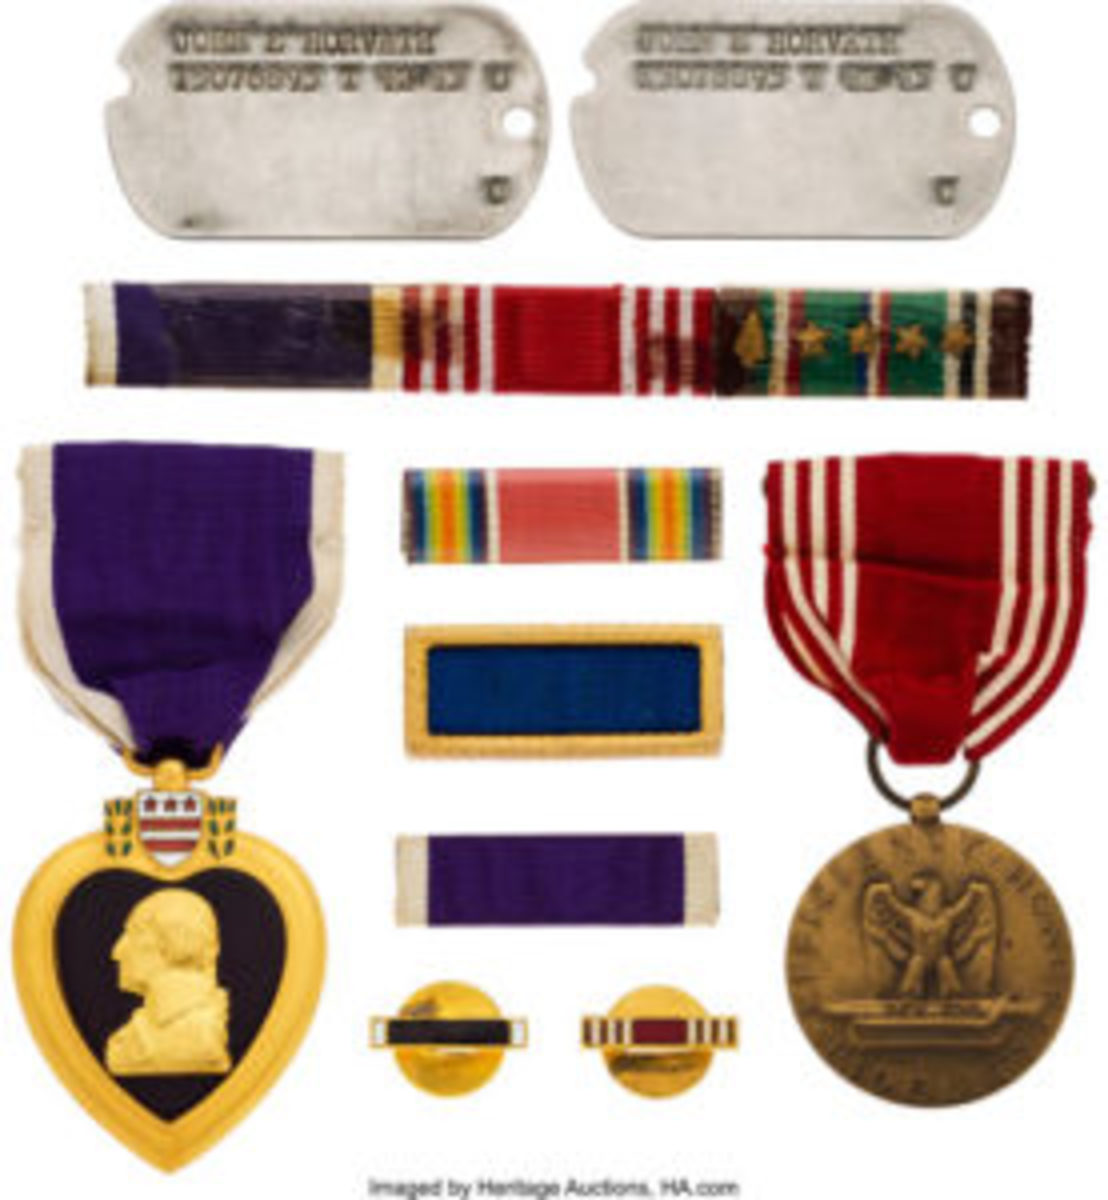 Horvath's military medals.